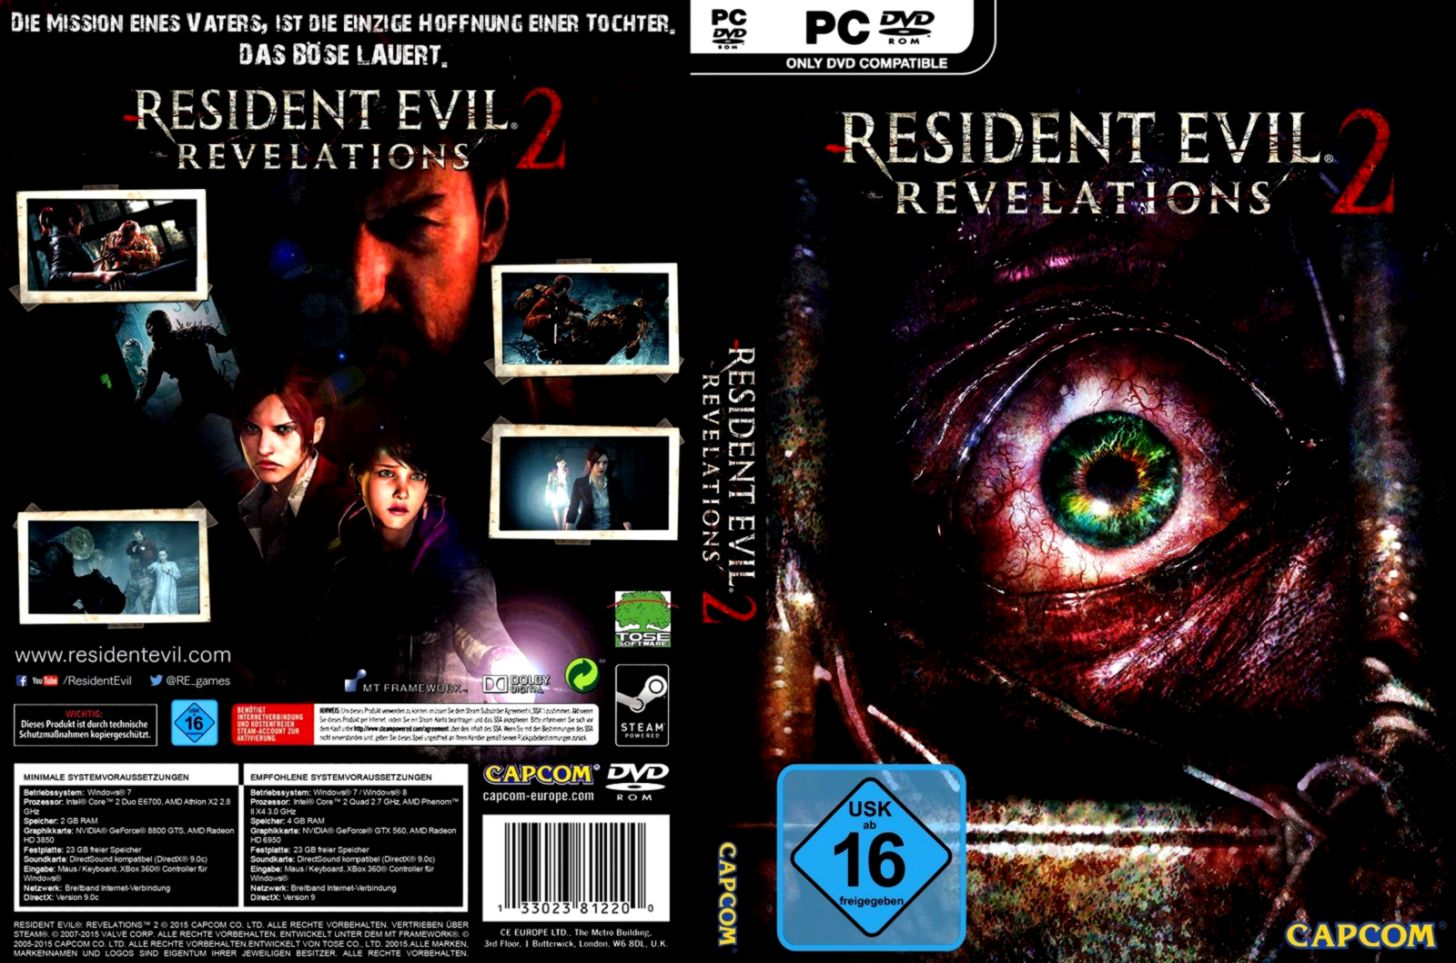 Resident Evil Revalations Games Dvd Cover   Find Wallpapers